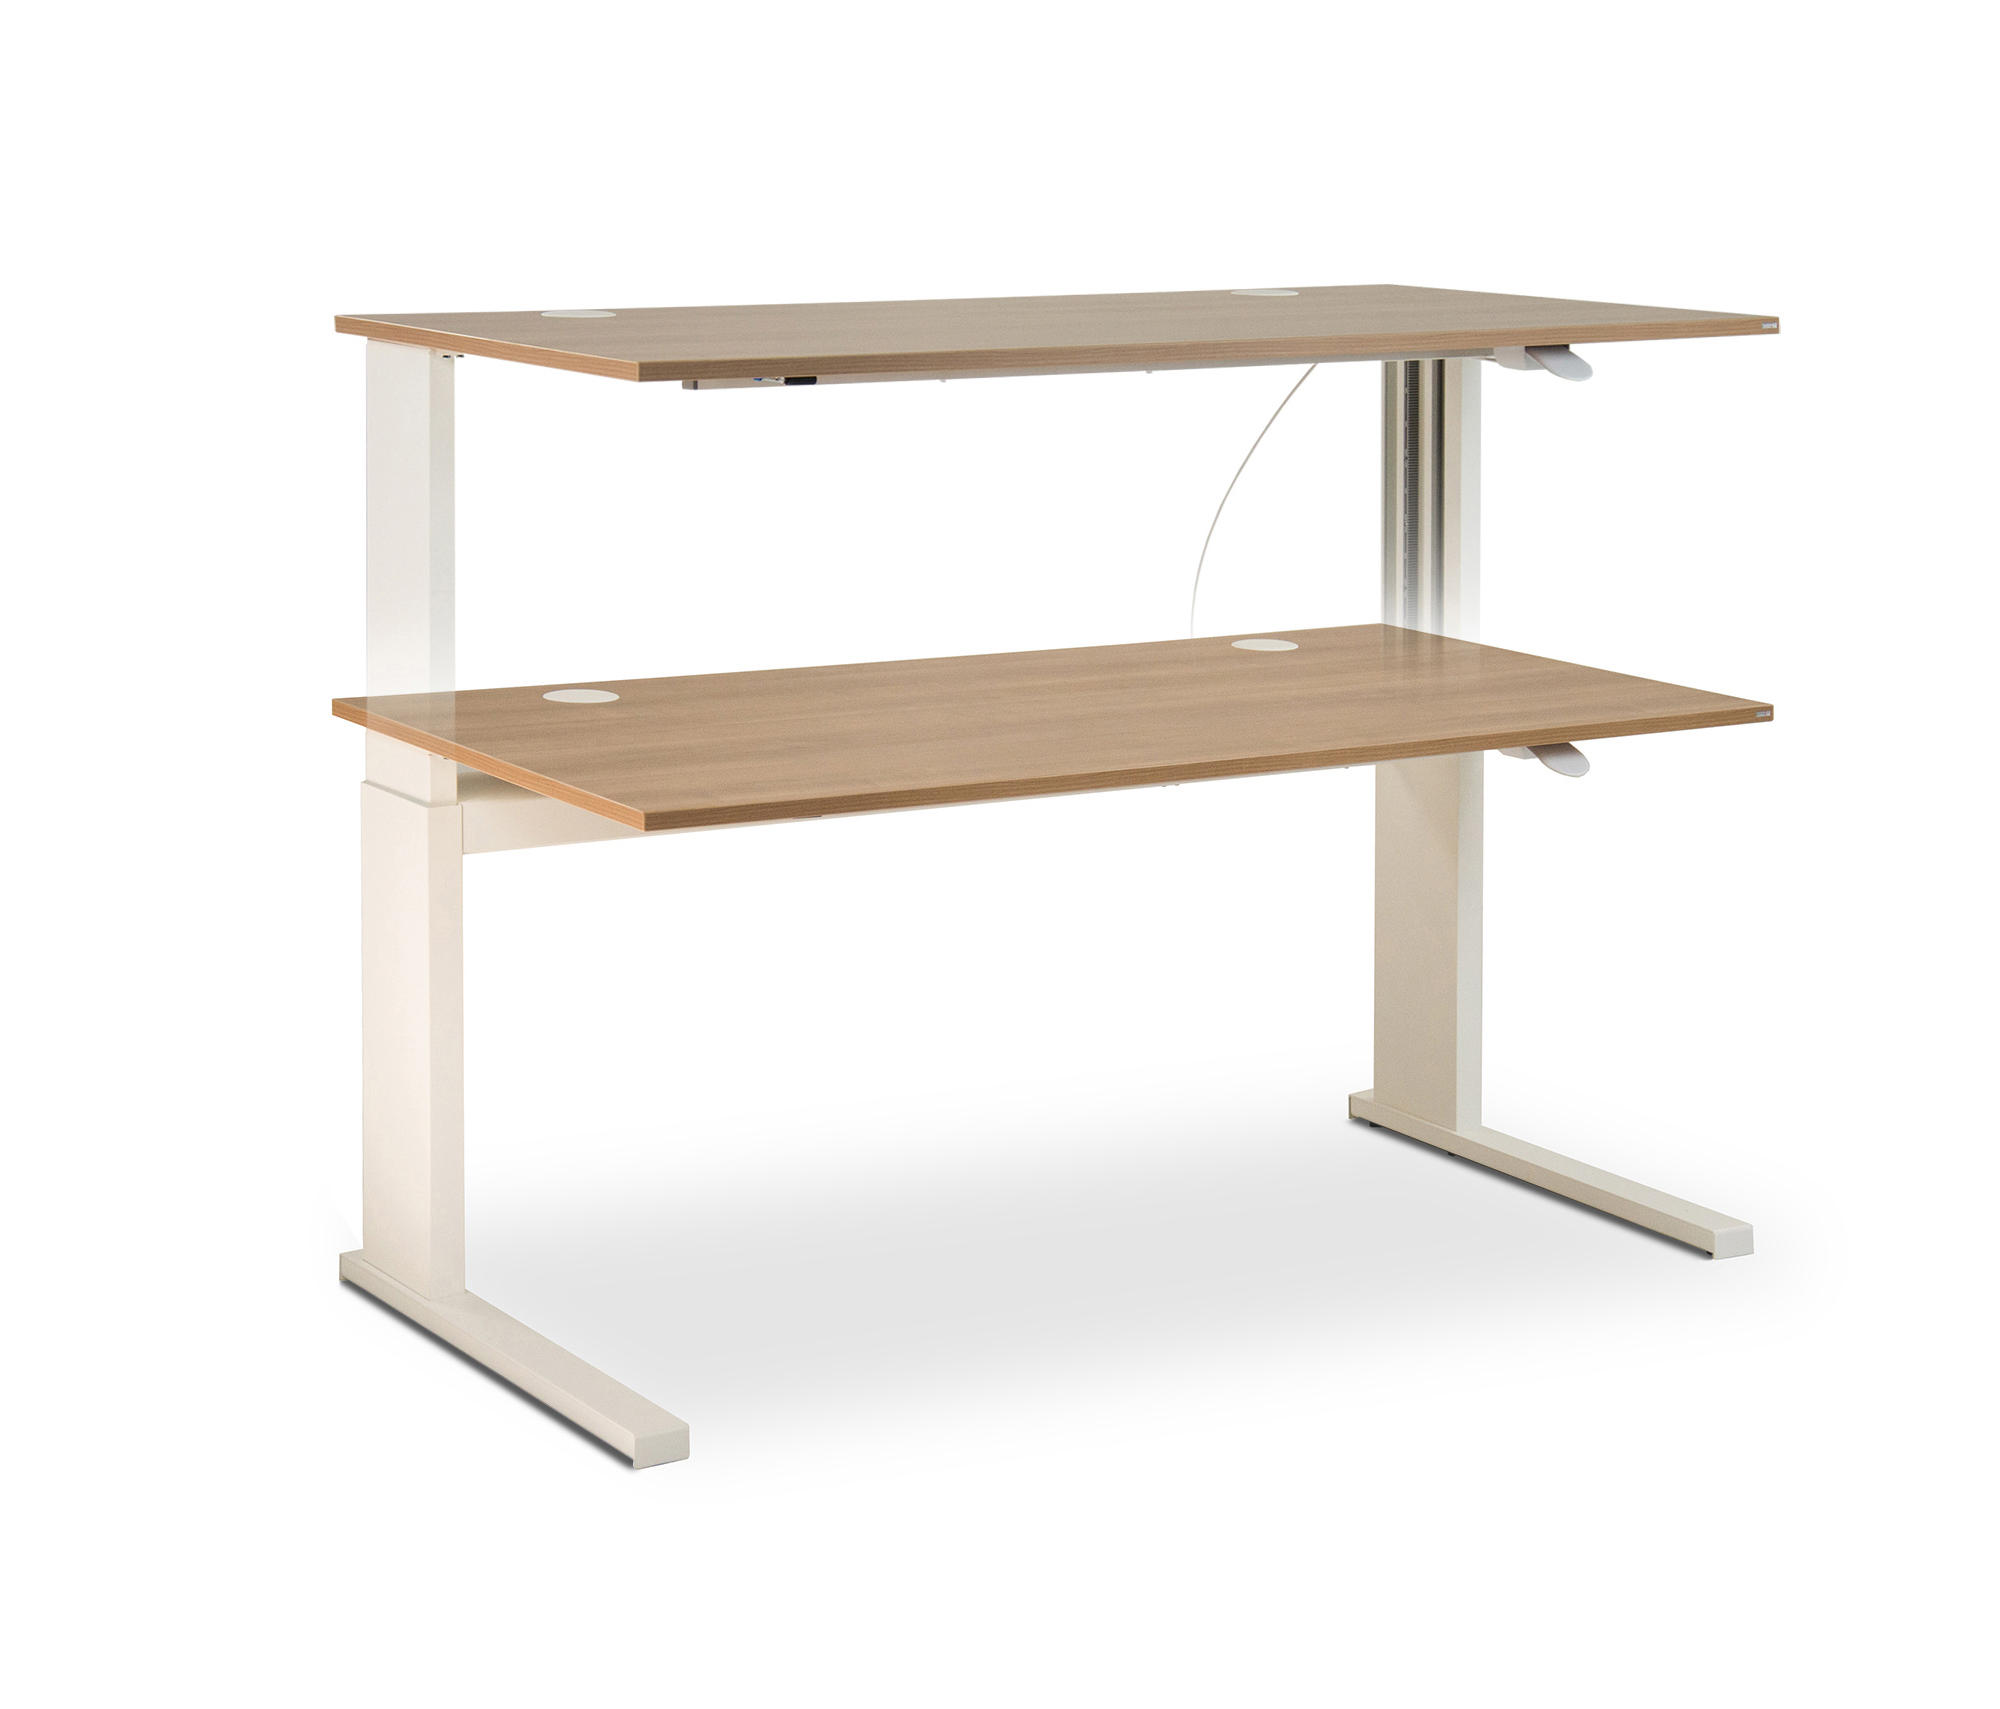 IMOVE-S - Individual desks from LEUWICO | Architonic